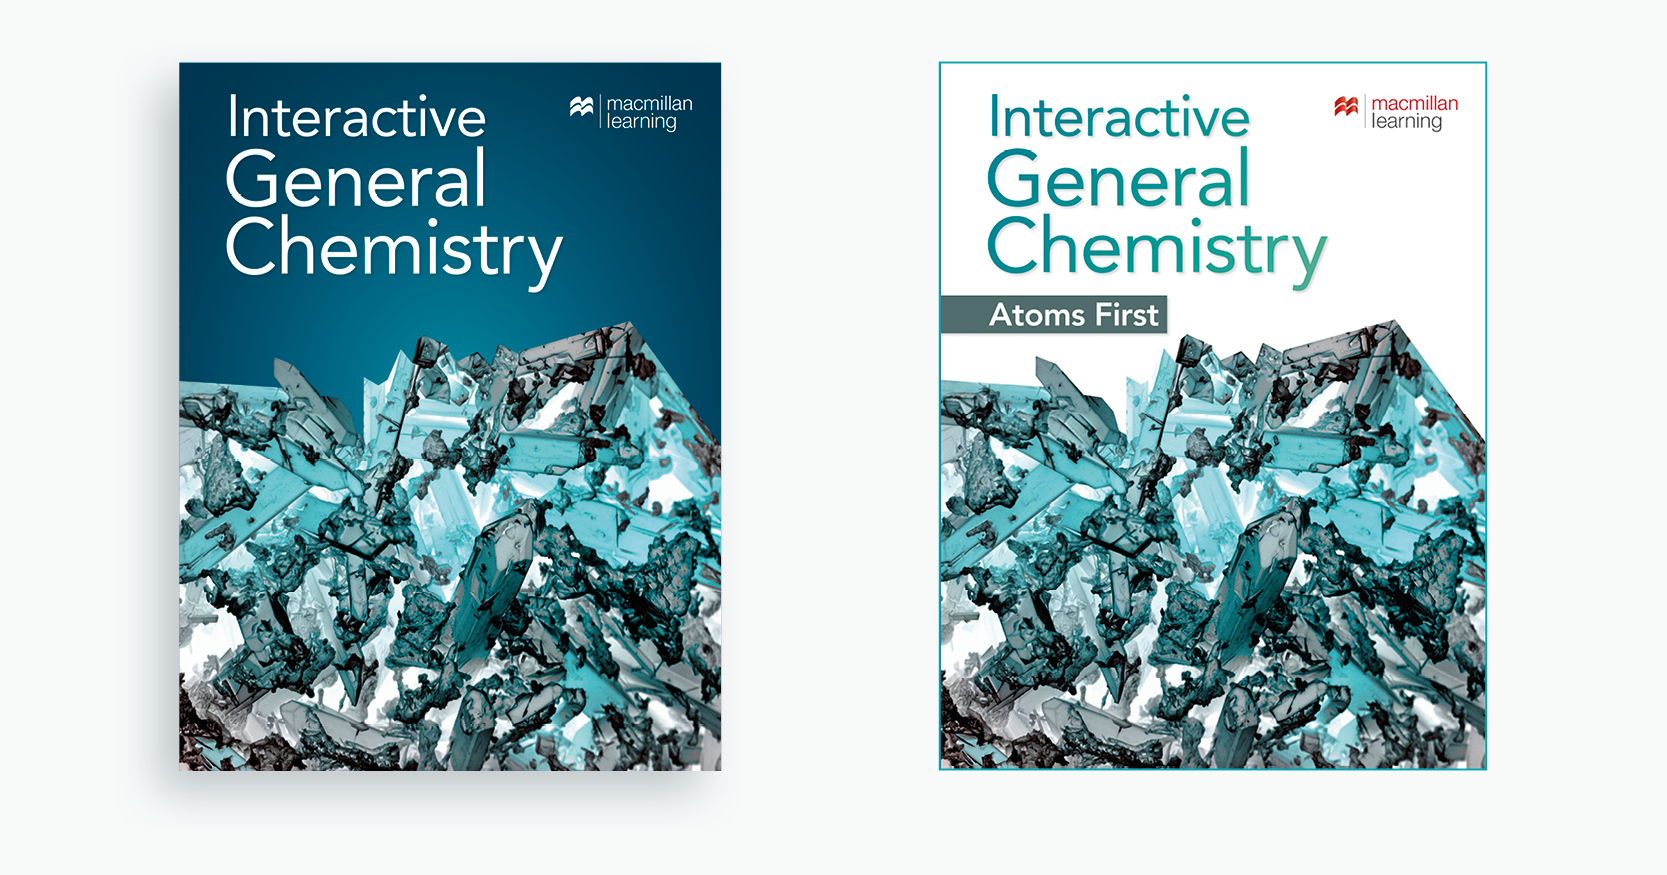 Interactive General Chemistry